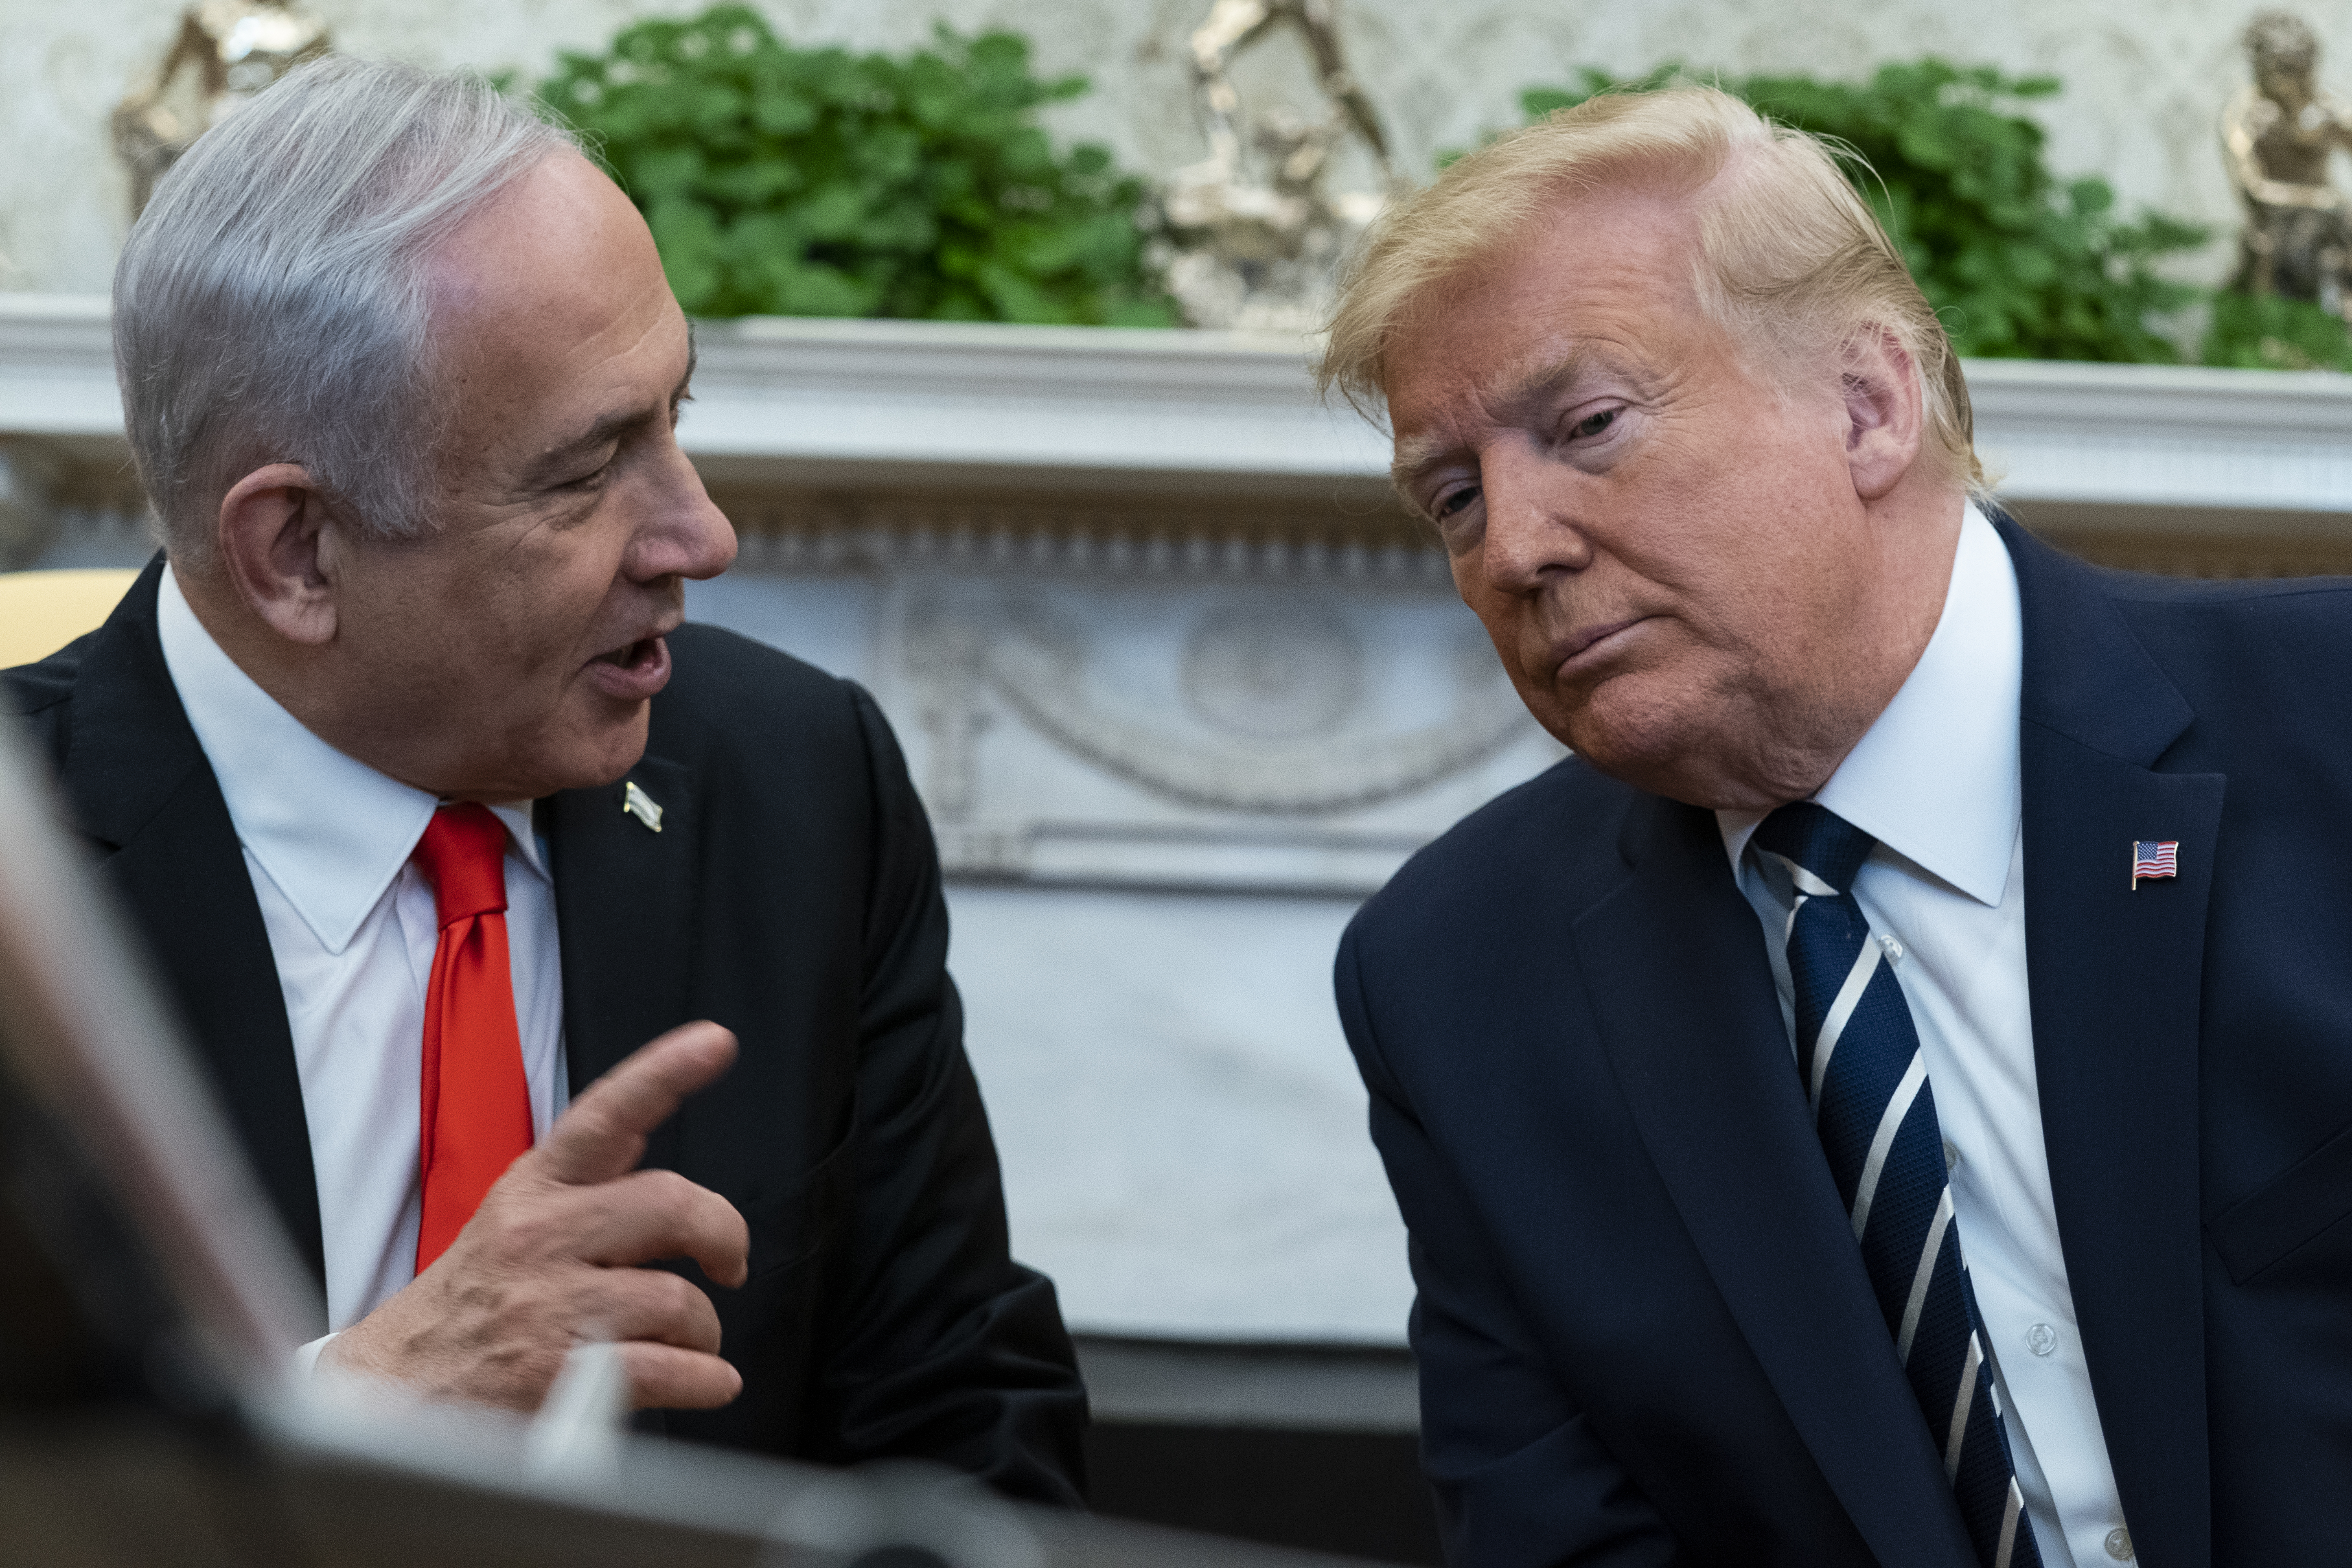 President Donald Trump listens to Israeli Prime Minister Benjamin Netanyahu during a meeting in the Oval Office of the White House, on Jan. 27, 2020, in Washington.